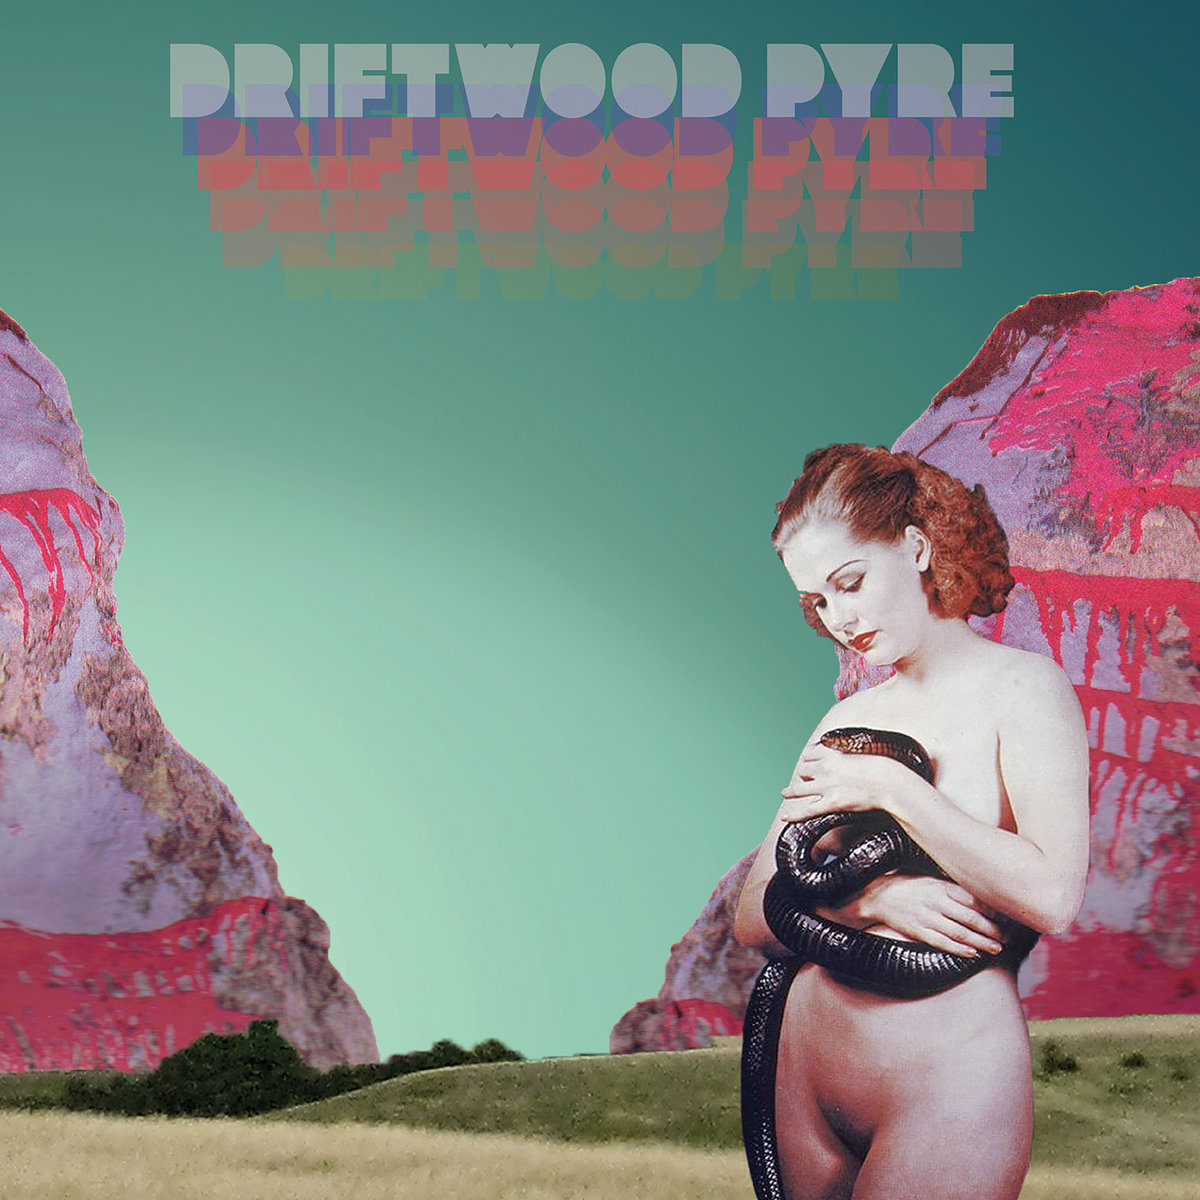 Driftwood Pyre